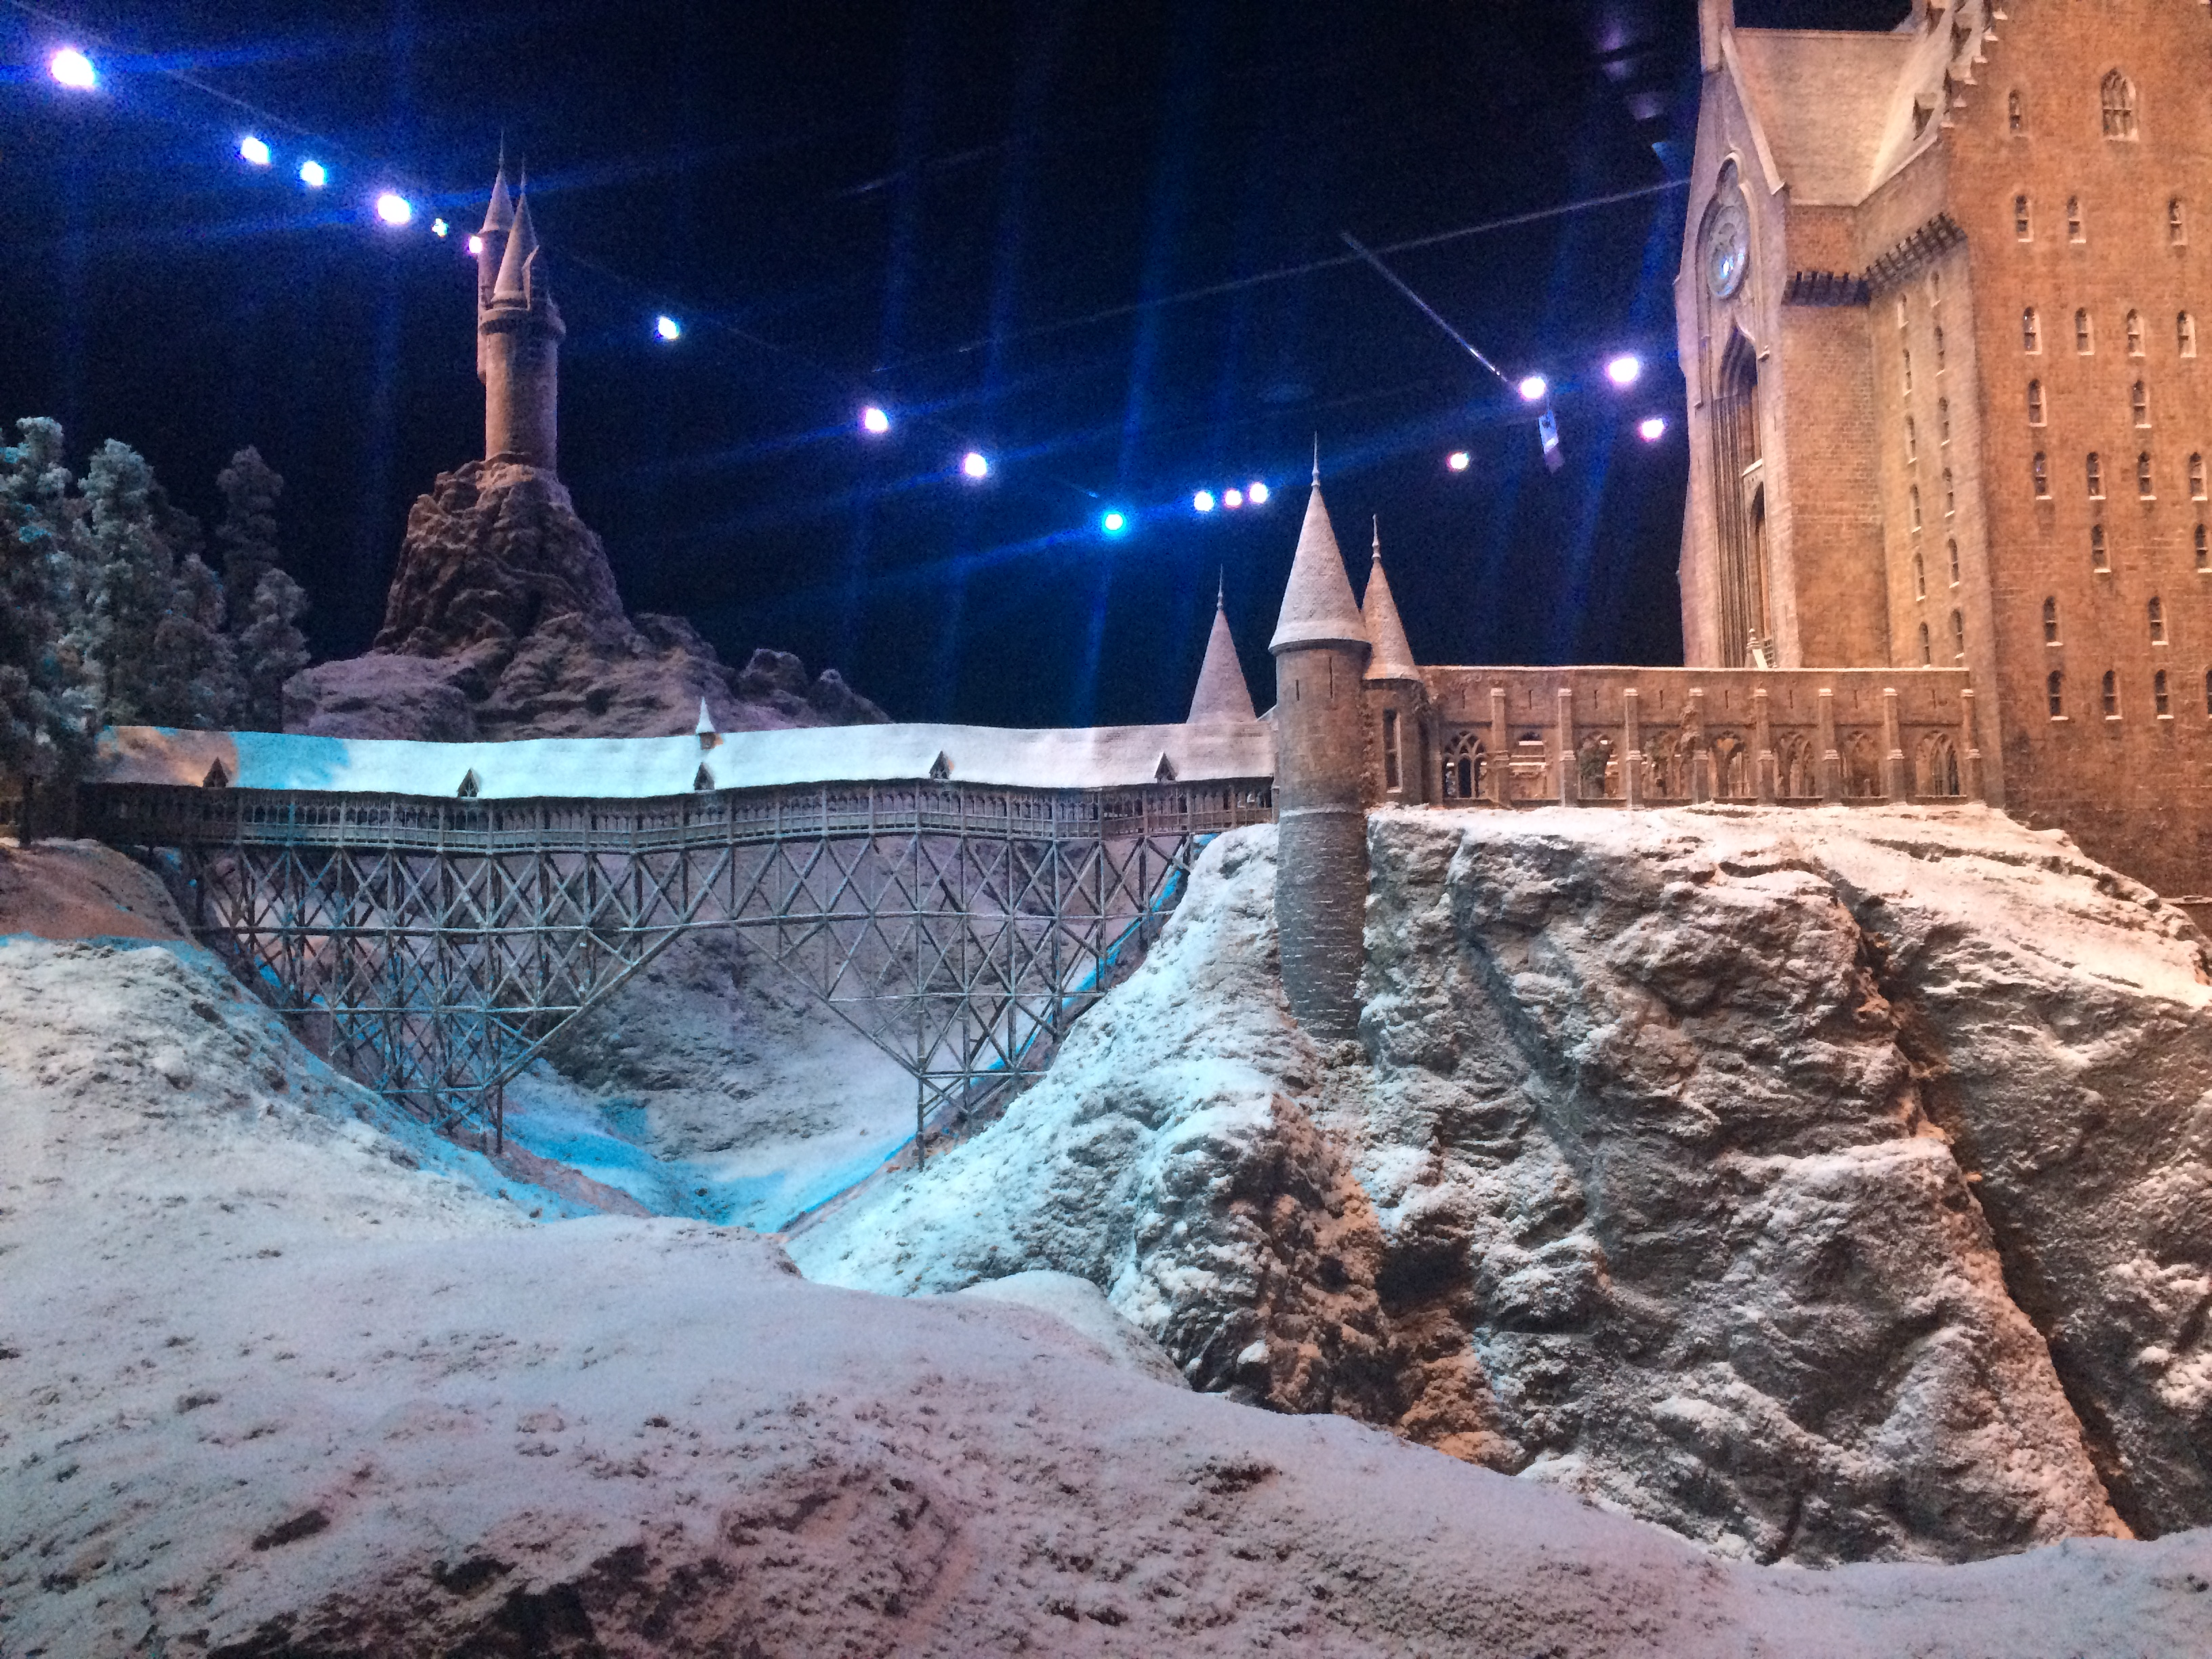 A 1:24 scale model of the Hogwarts Castle was covered with snow for the festive season at the Warner Bros Studio Tour in Watford, London.